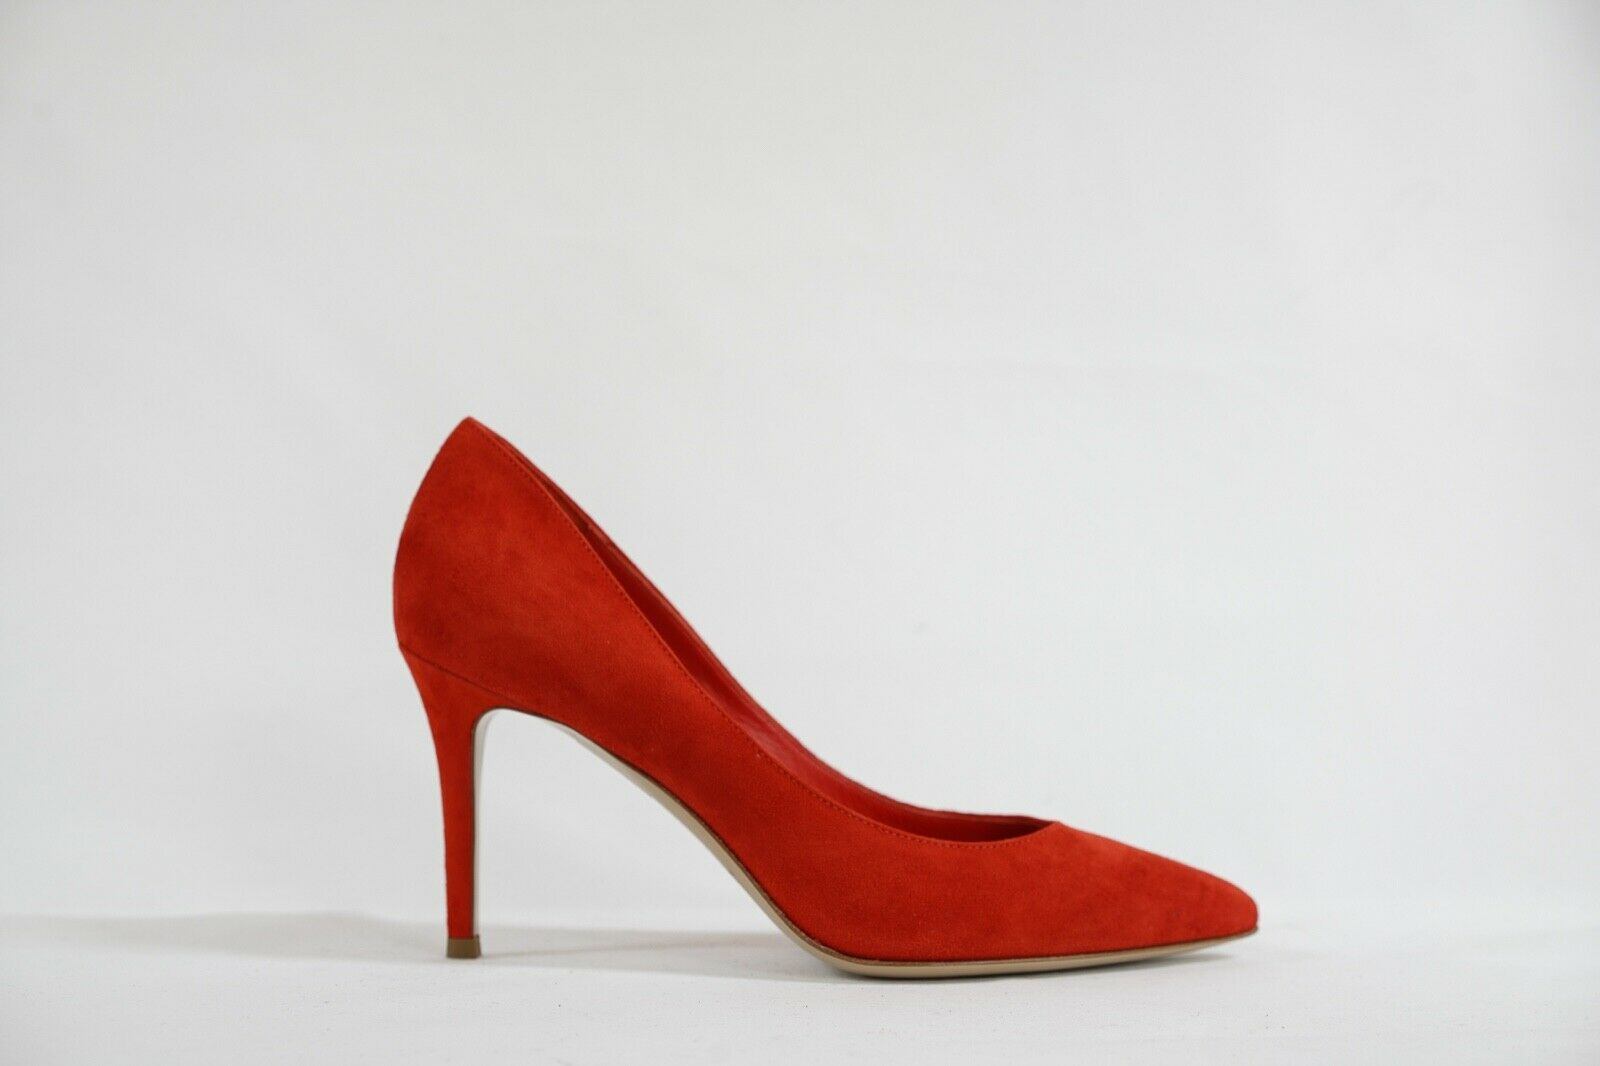 Fabio Rusconi Women's Red Suede Heel Nataly